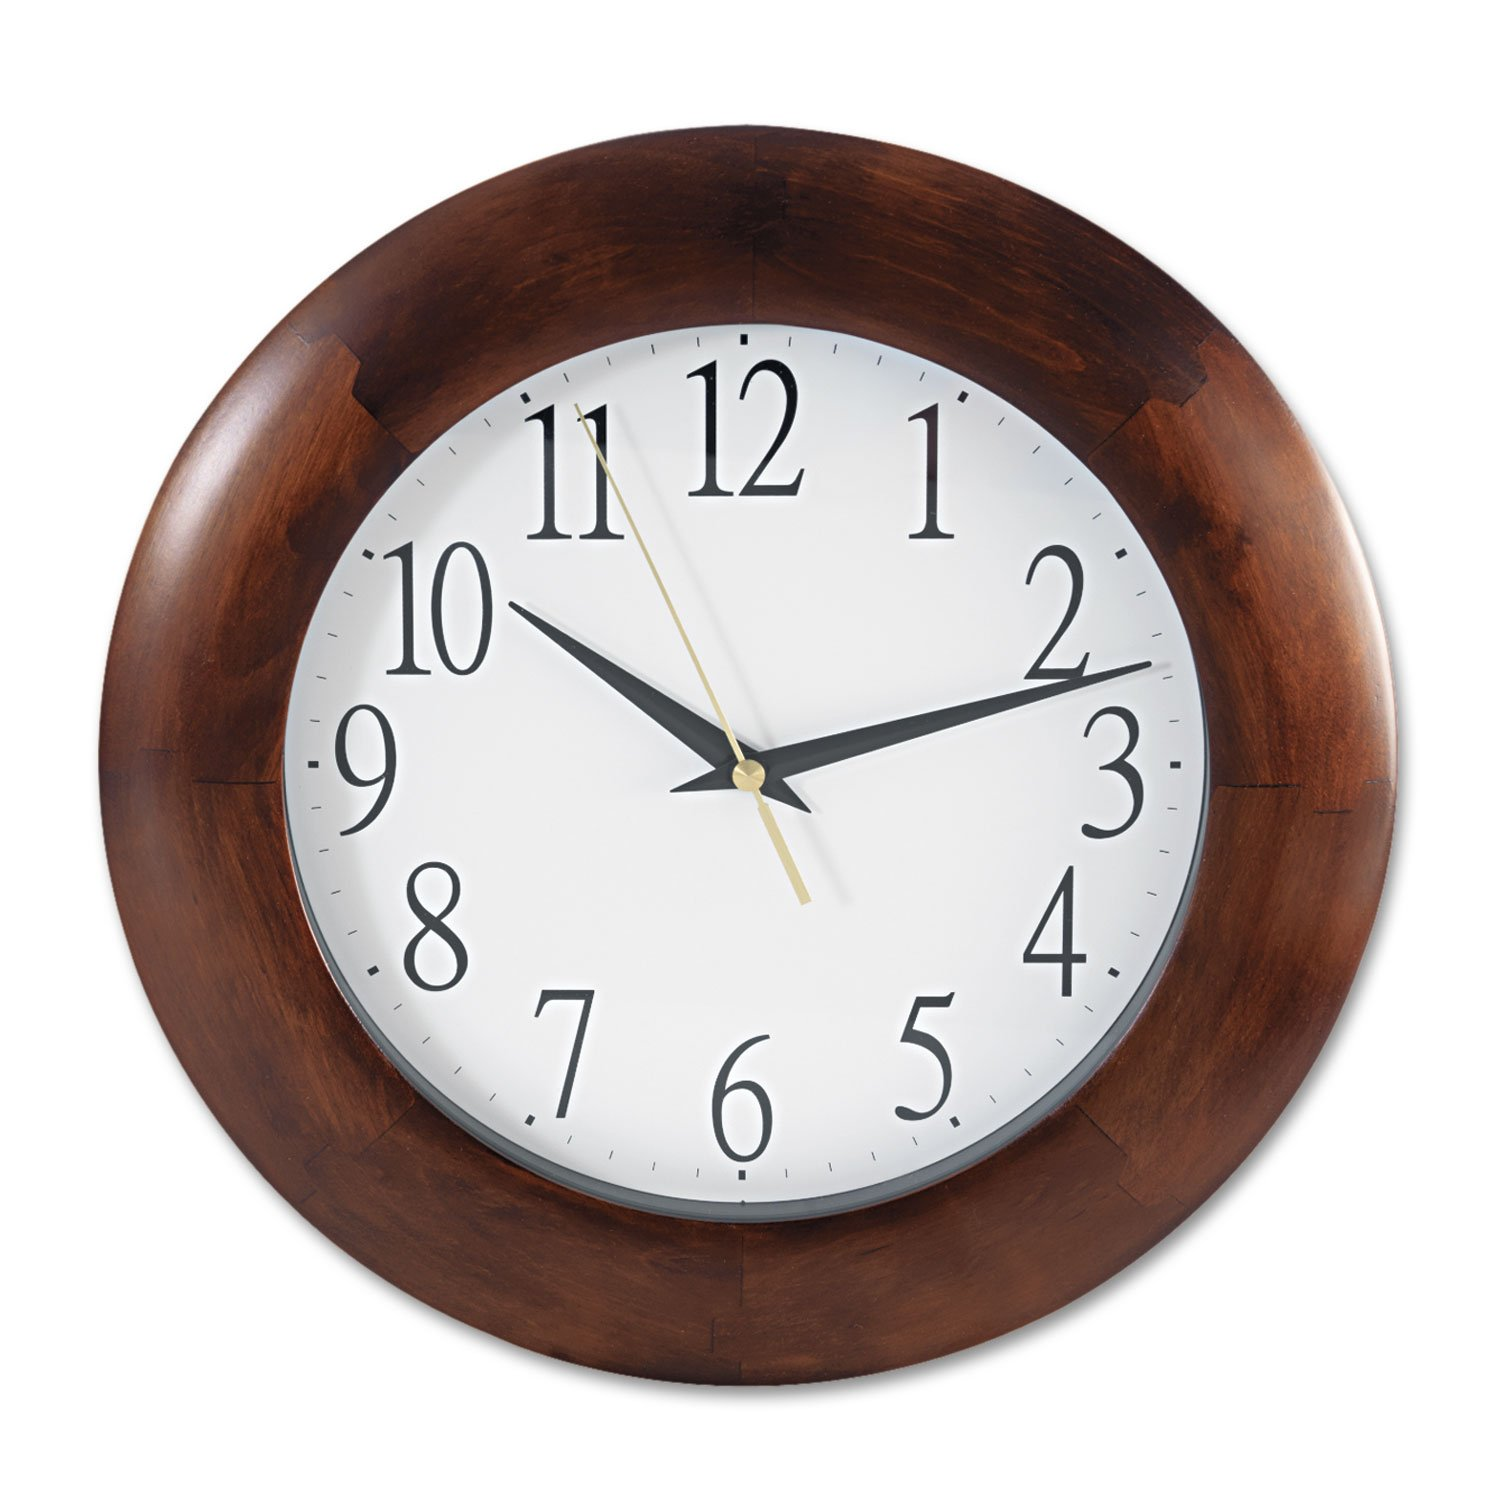 Universal 10414 Round Wood Clock, 12 3/4'', Cherry